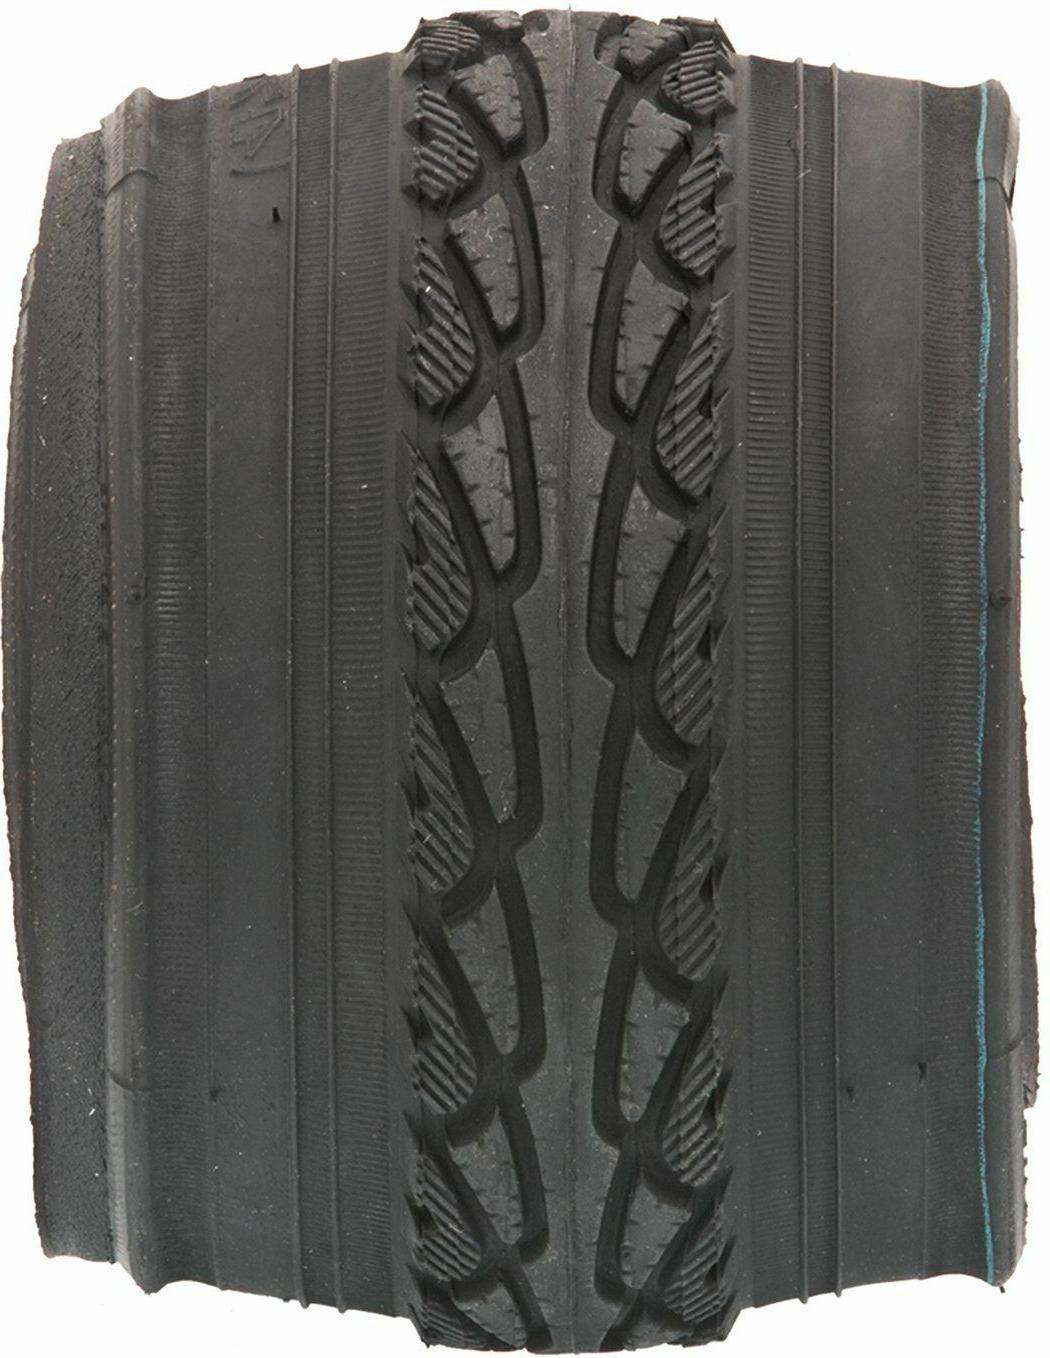 Townie Replacement  26x1.75-2.125 GLIDE Bicycle Tire COMFORT